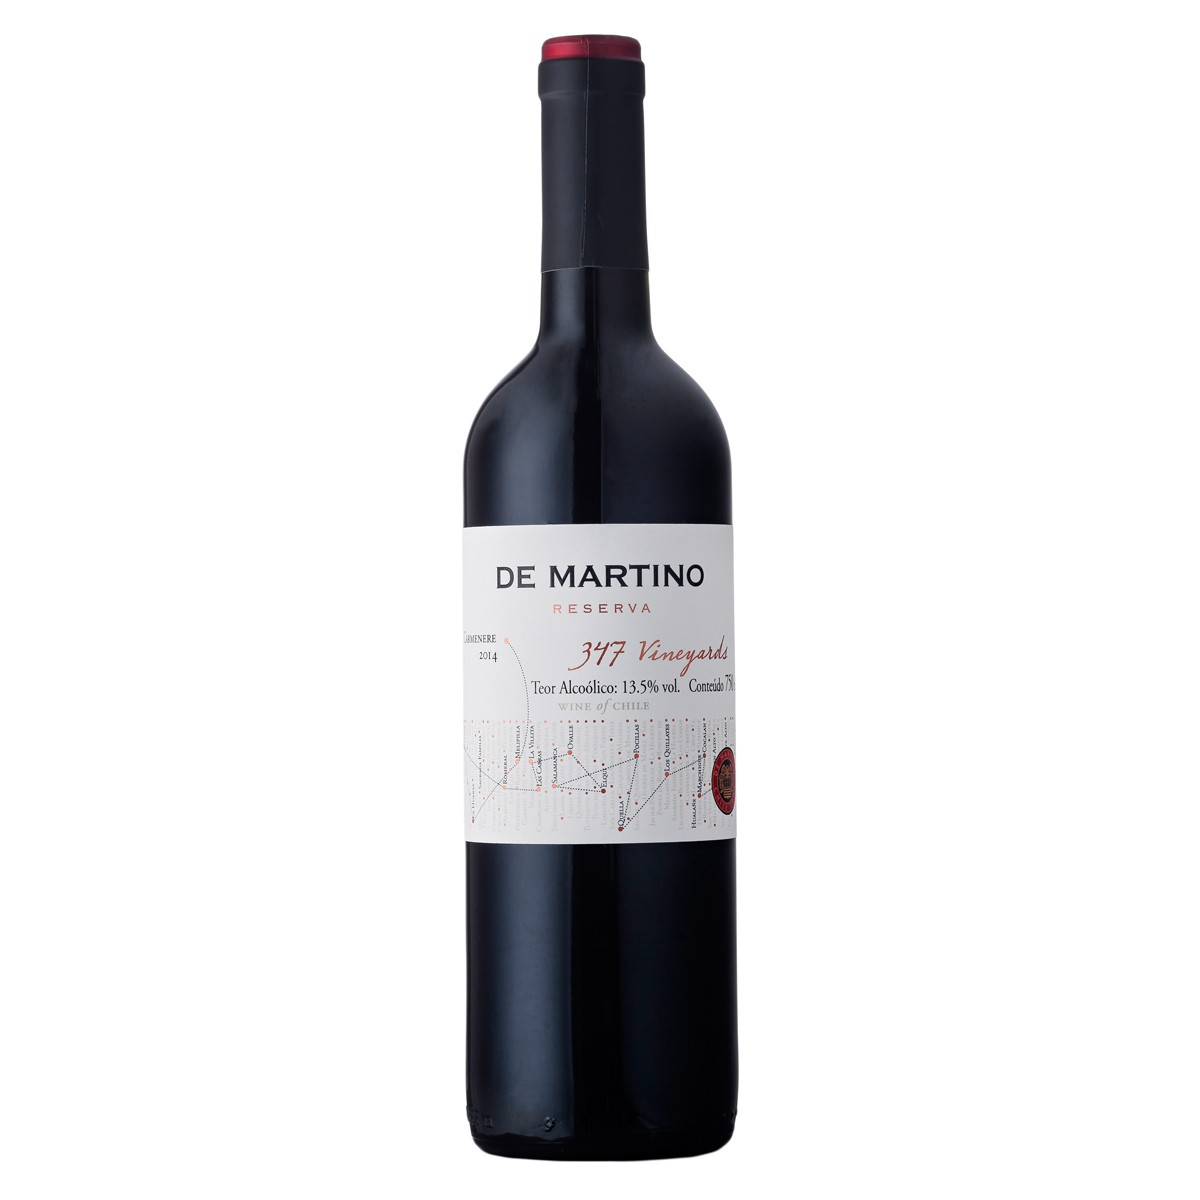 De Martino Carmenere Reserva 347 Vineyards